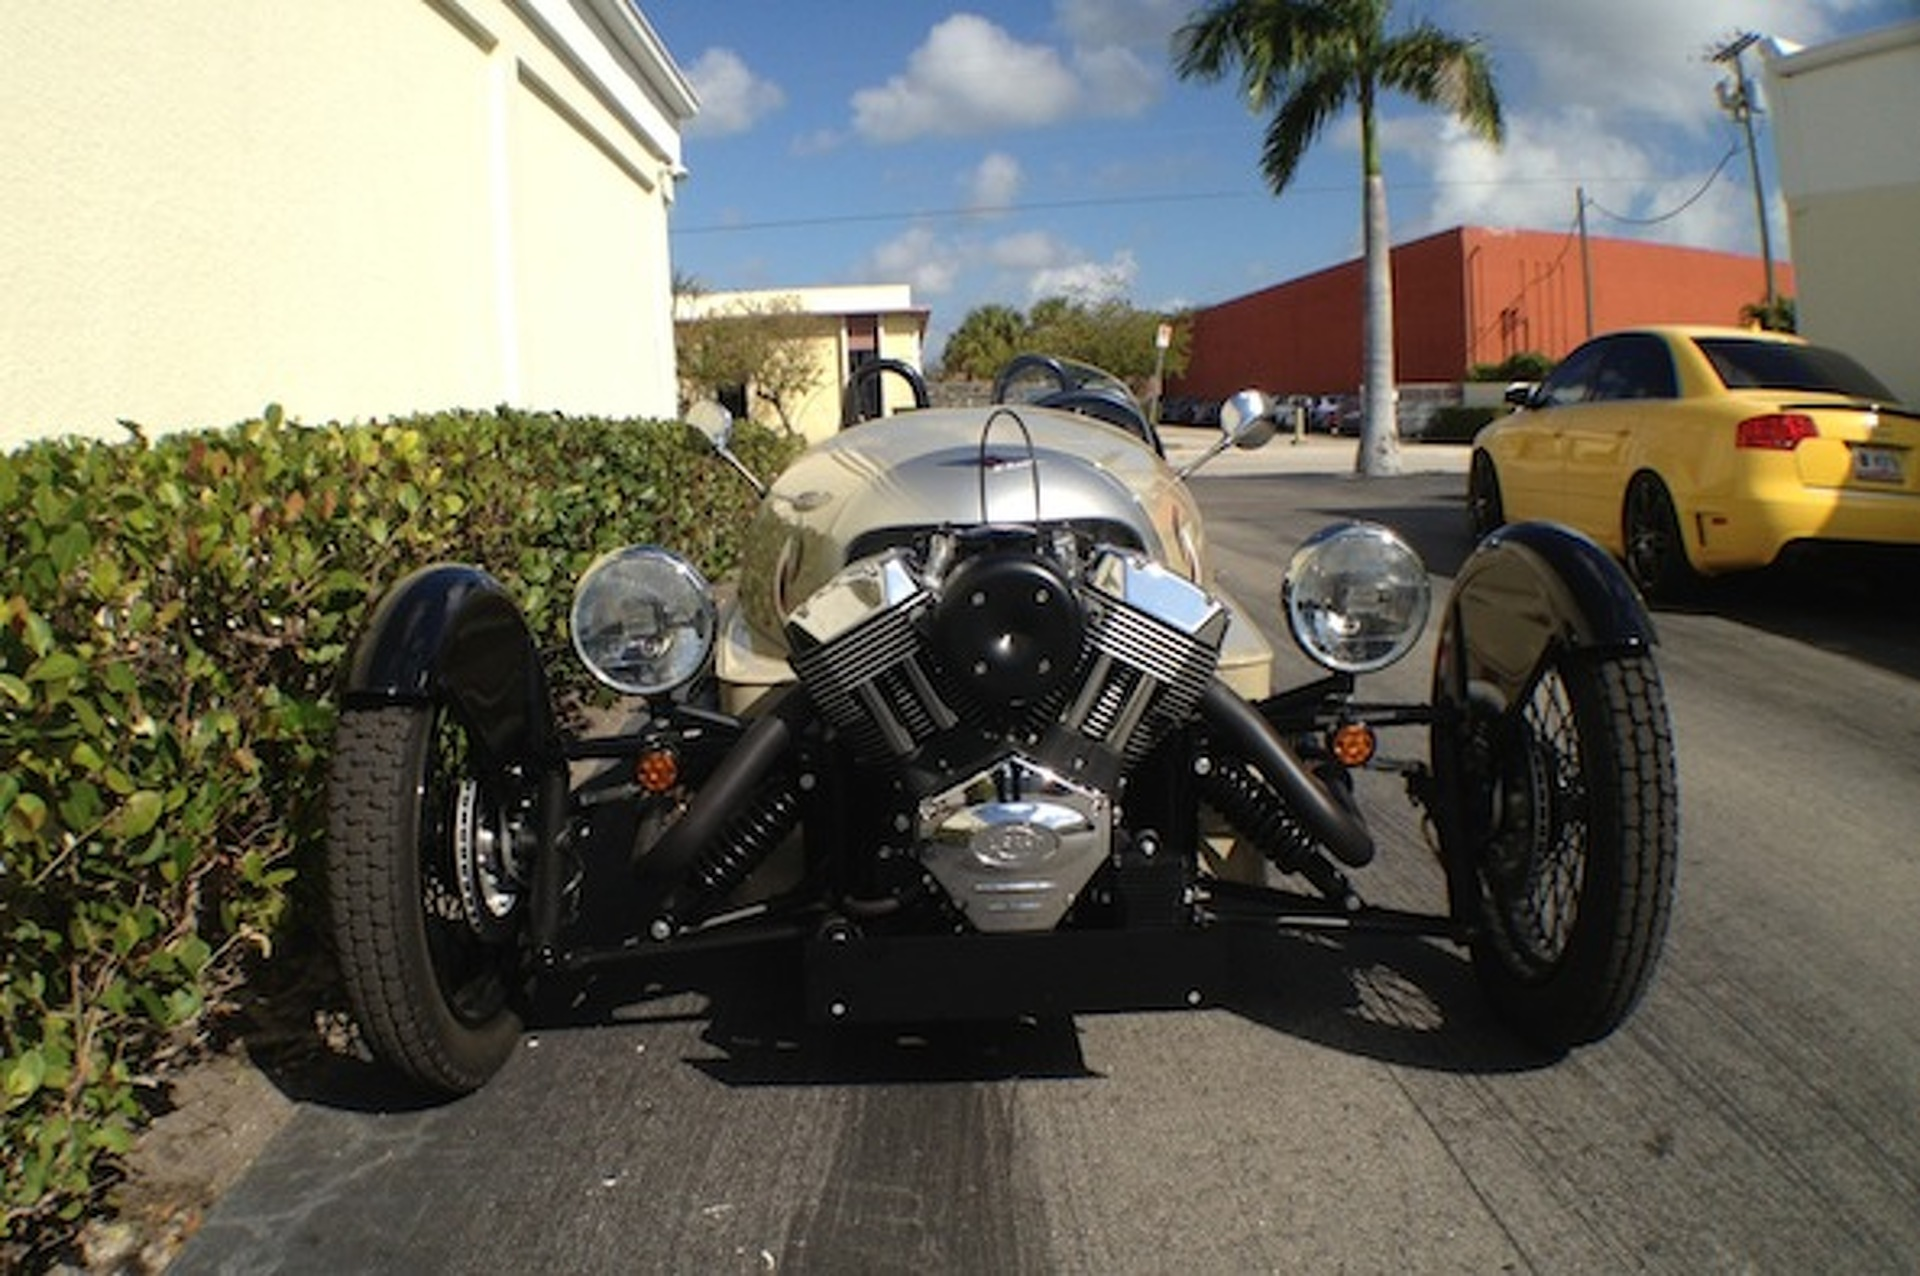 Riding Shotgun in the Awe-Inspiring Morgan Threewheeler